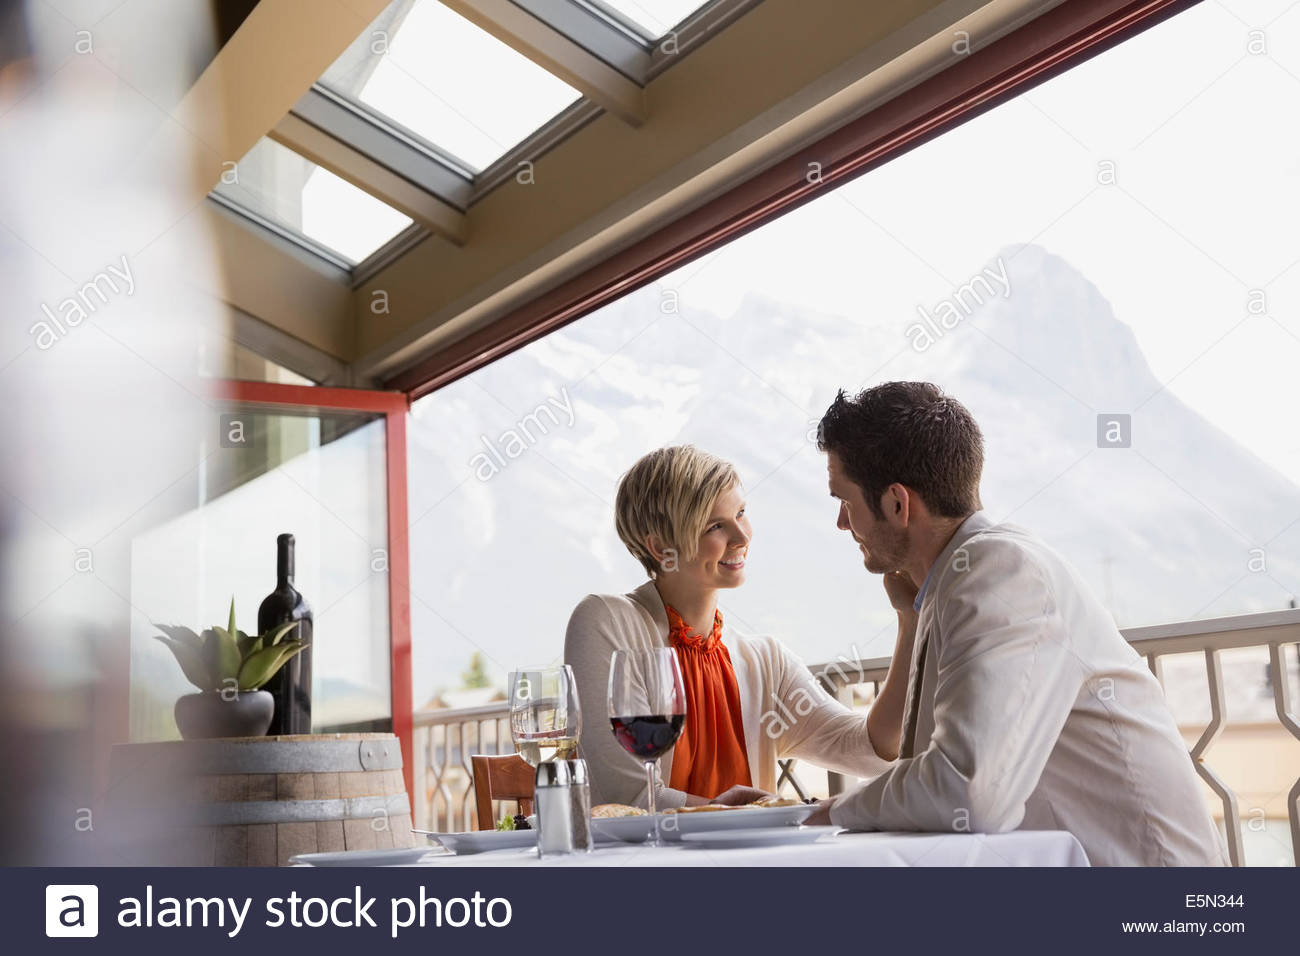 Romantic couple at restaurant table on balcony - Stock Image